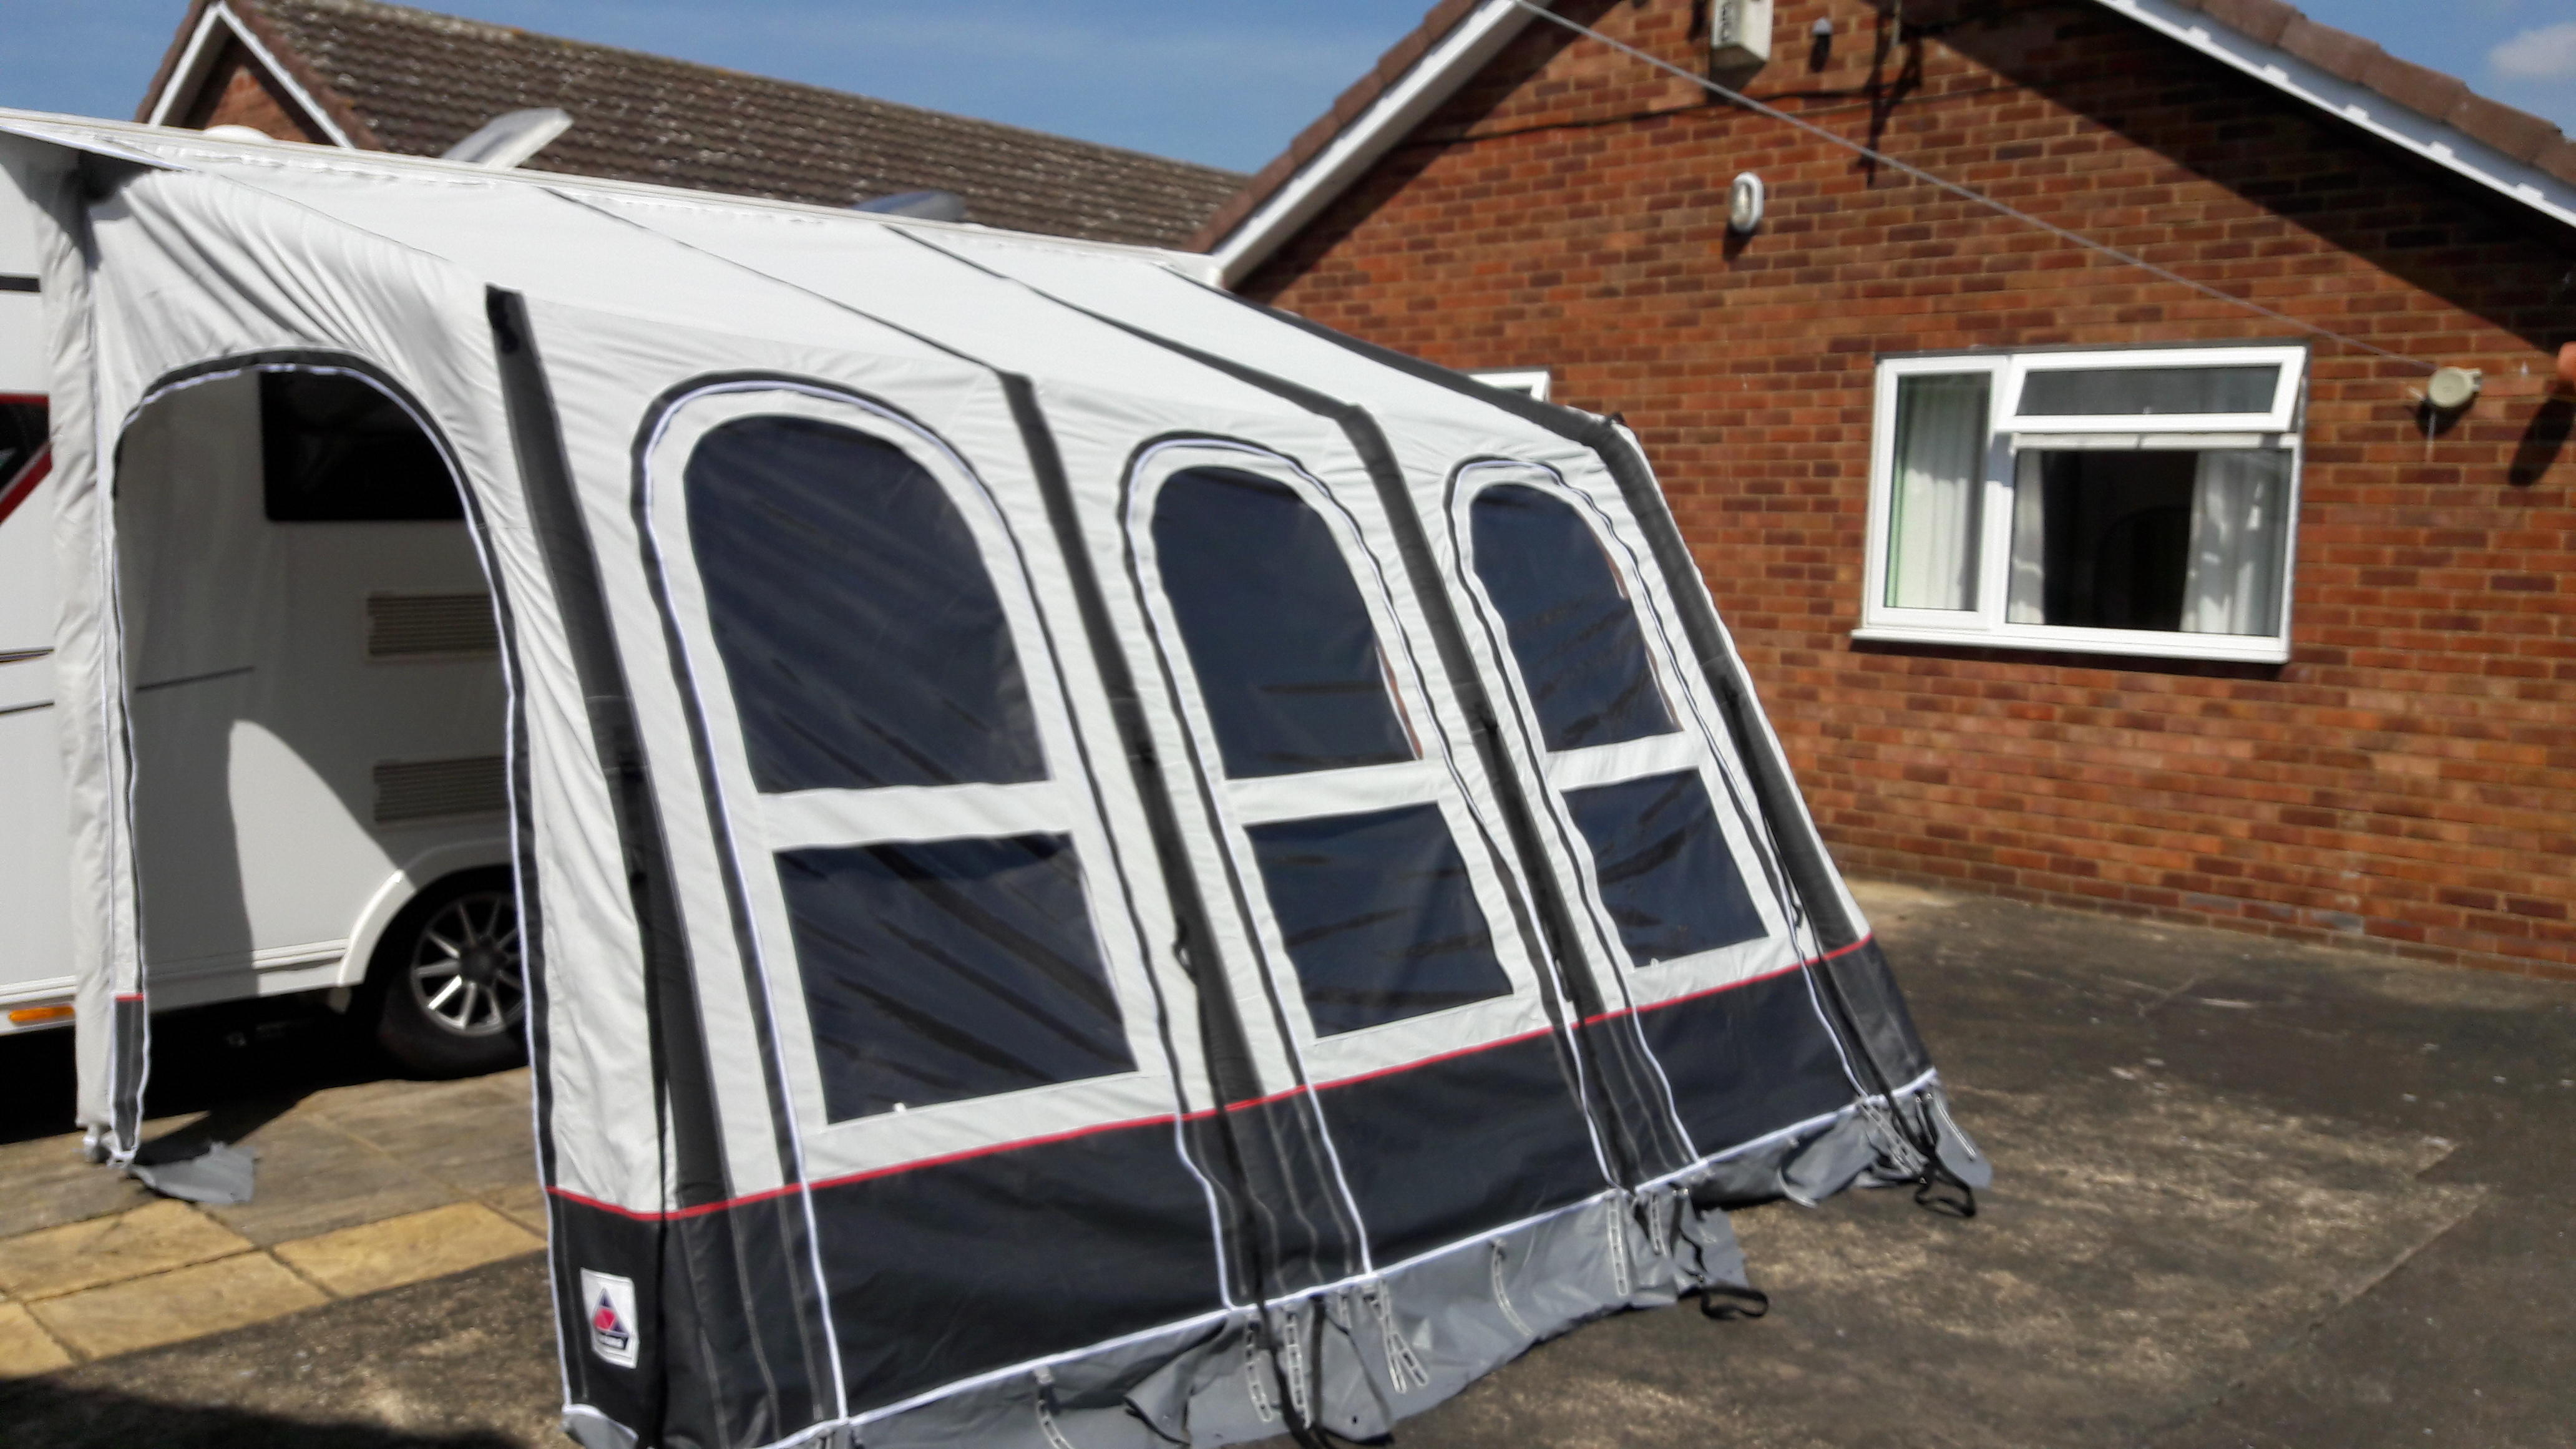 DOREMA AIR AWNING 330 ONLY USED FOR 1 SEASON AWNING IS AS